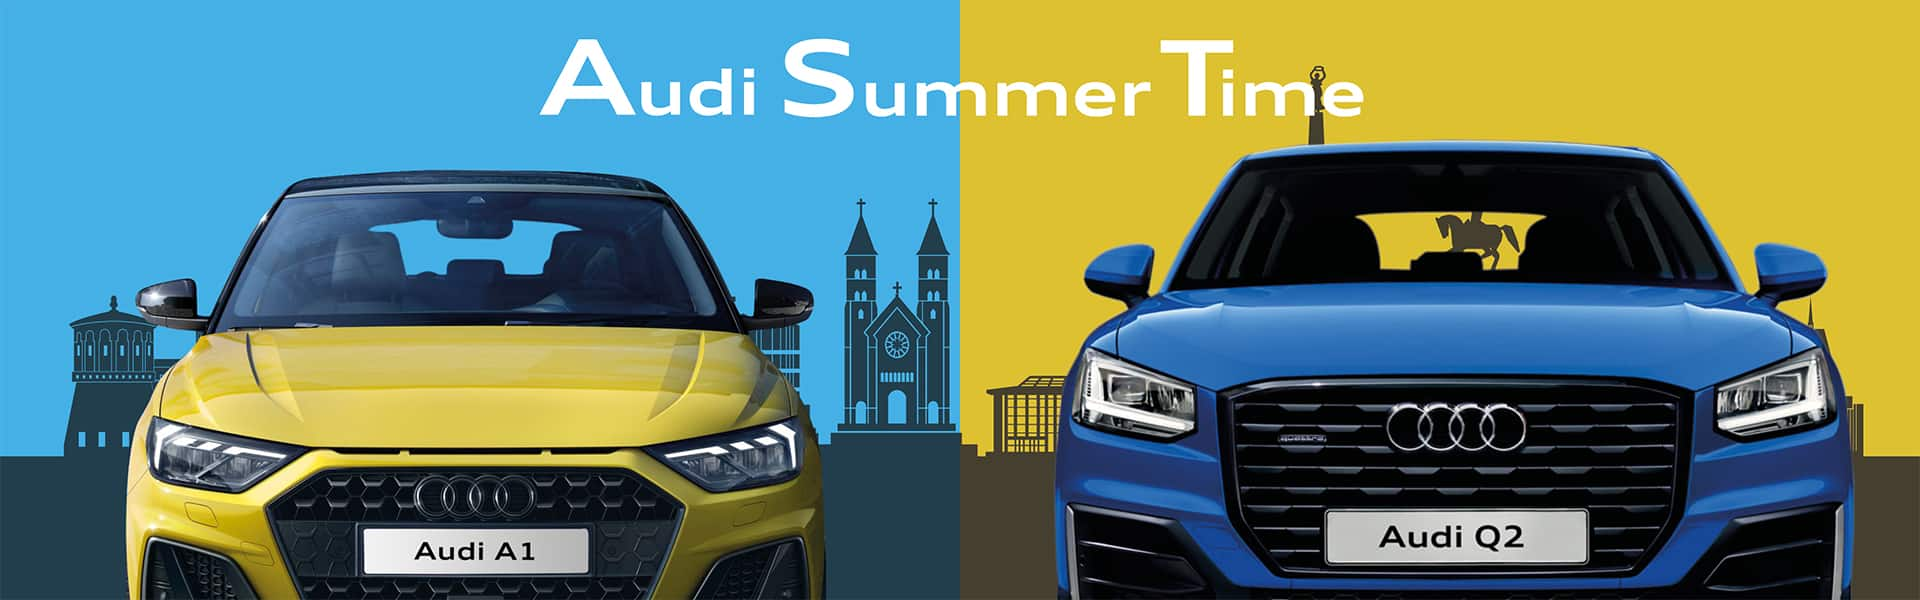 Audi Summer Time